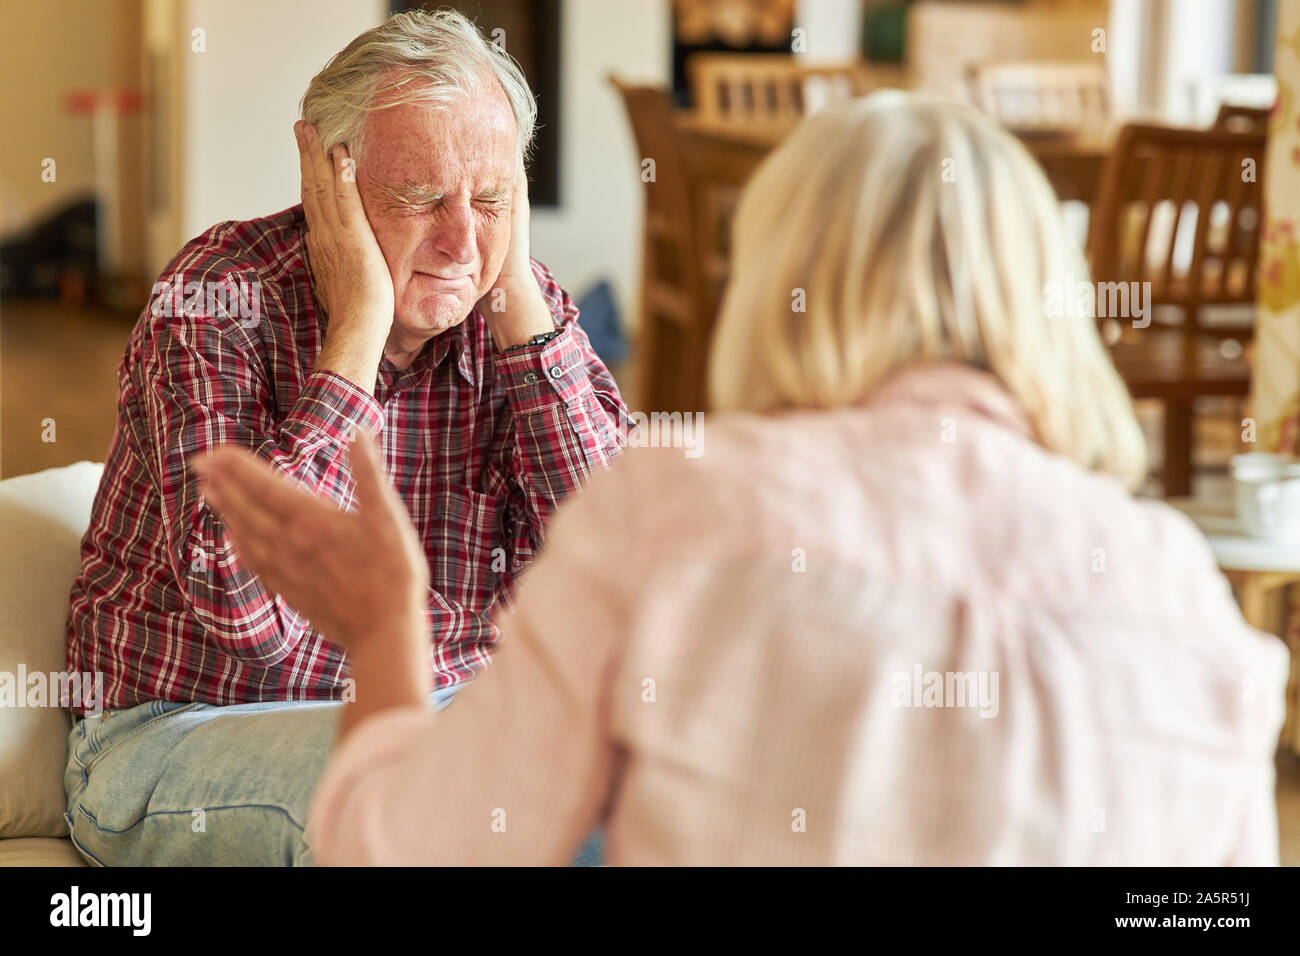 Senior man covers his ears during a rage or quarrel Stock Photo